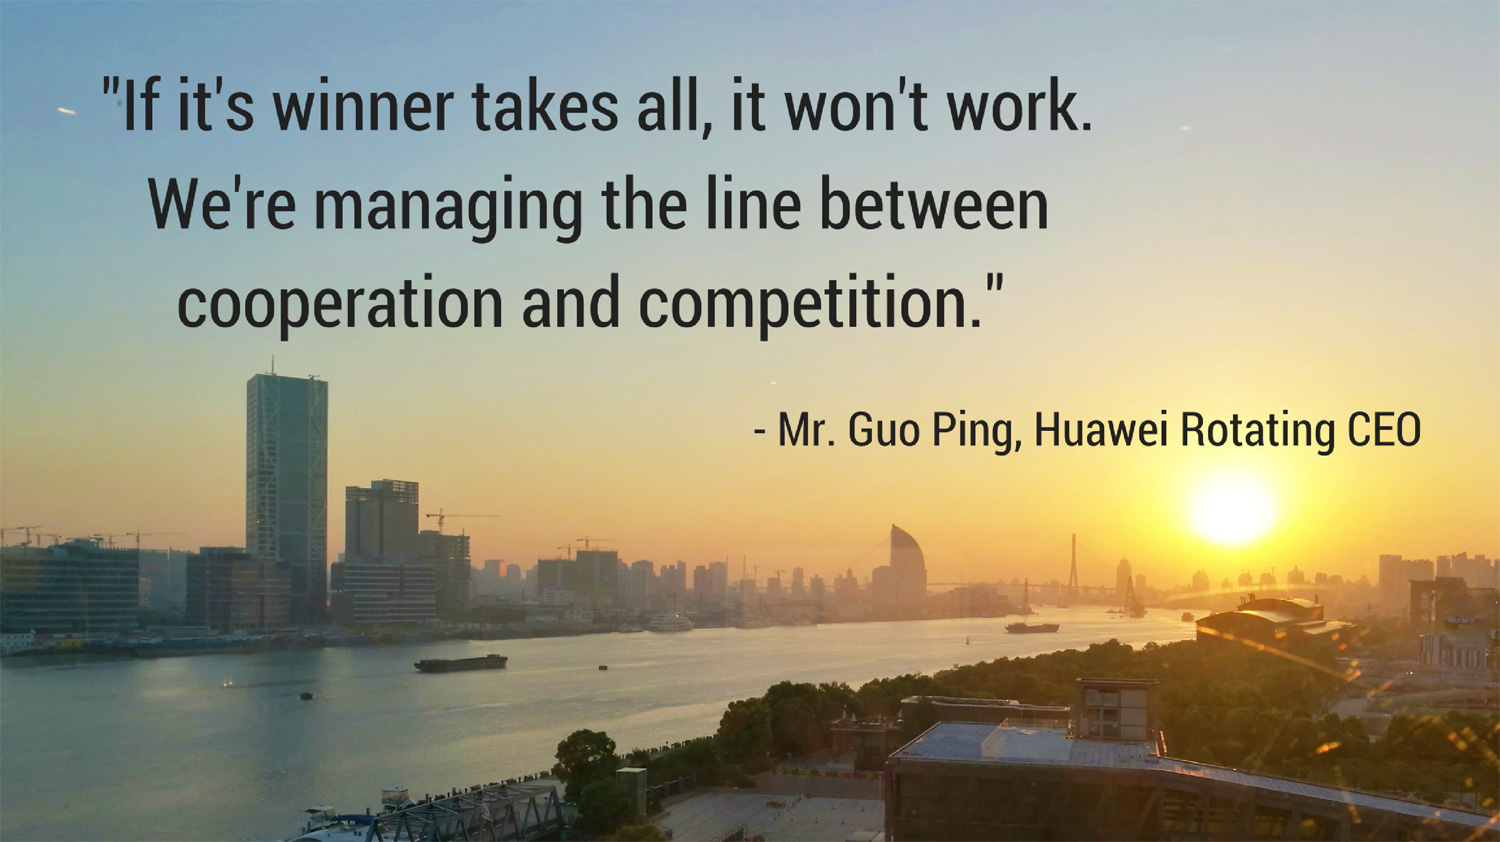 huawei-cloud-mobile-network-strategy-10